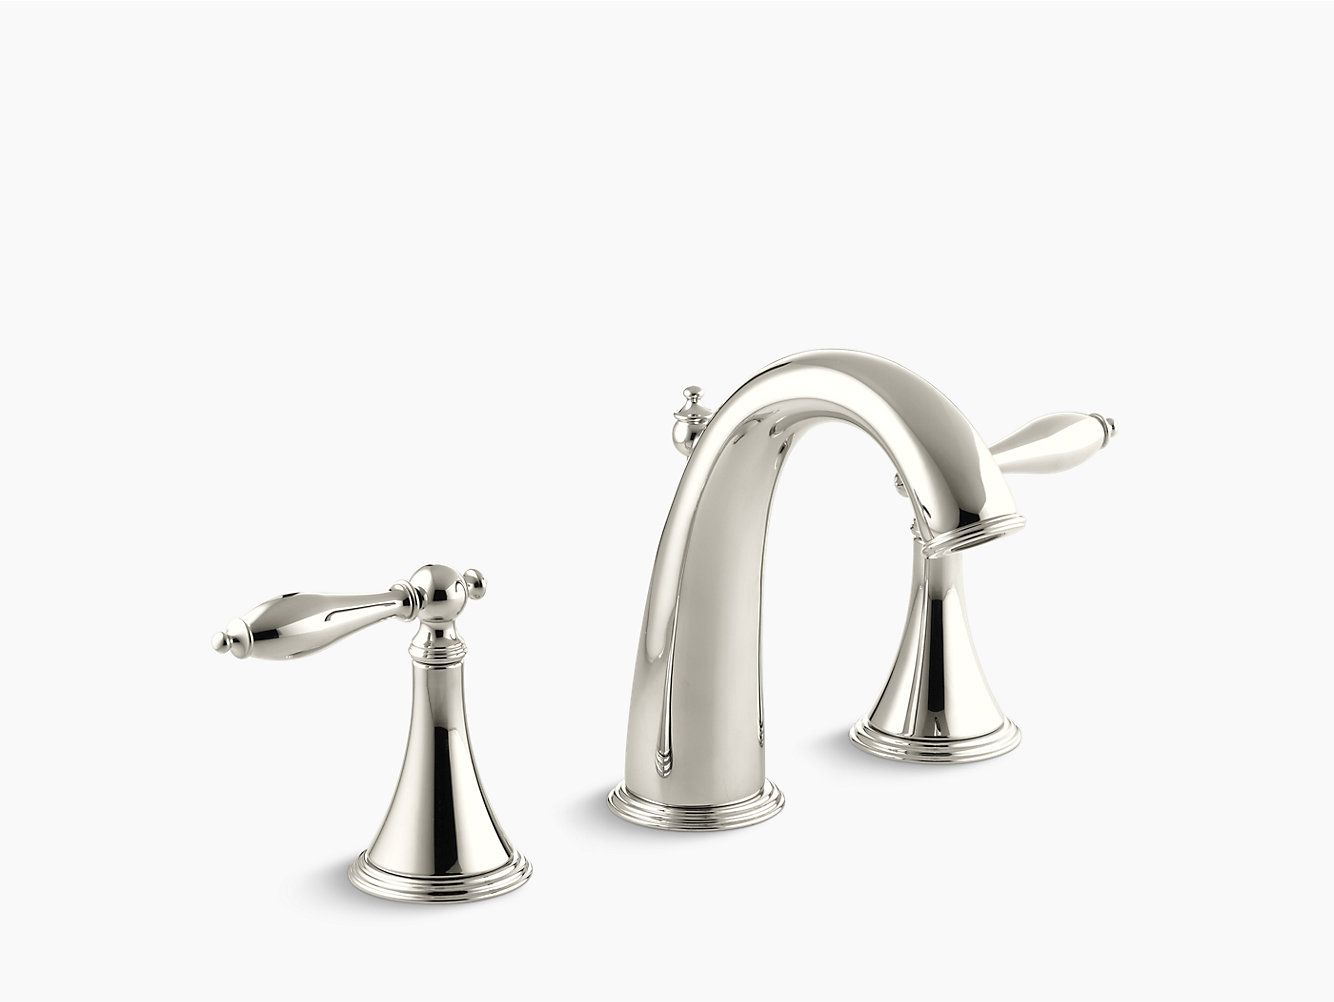 K 310 4m Finial Traditional Widespread Sink Faucet Kohler Sink Faucets Faucet Bathroom Sink Faucets [ jpg ]